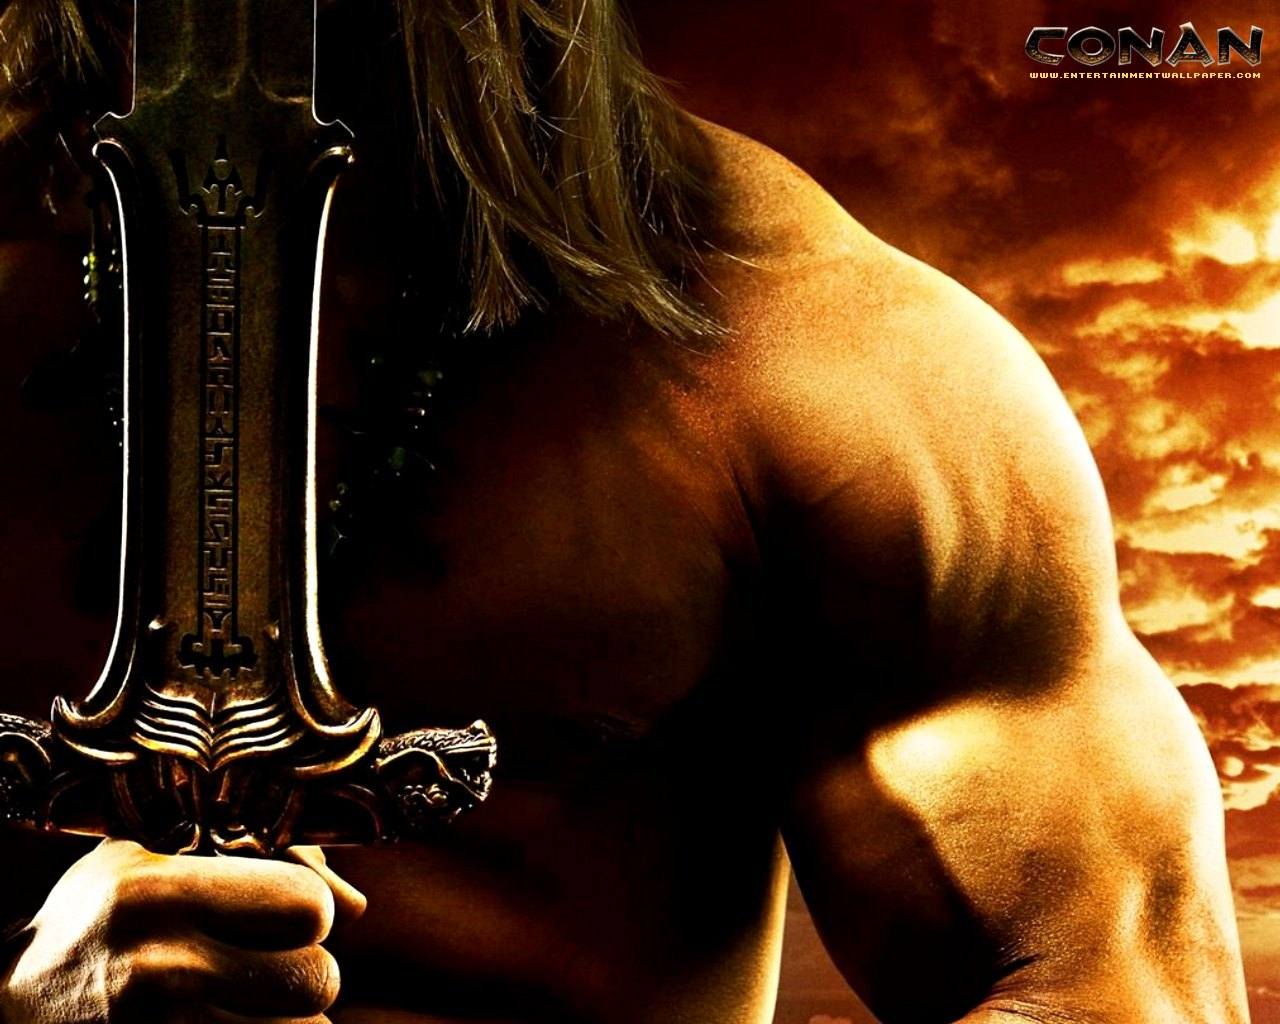 Conan the Barbarian   Conan The Barbarian 2011 Wallpaper 27423032 1280x1024